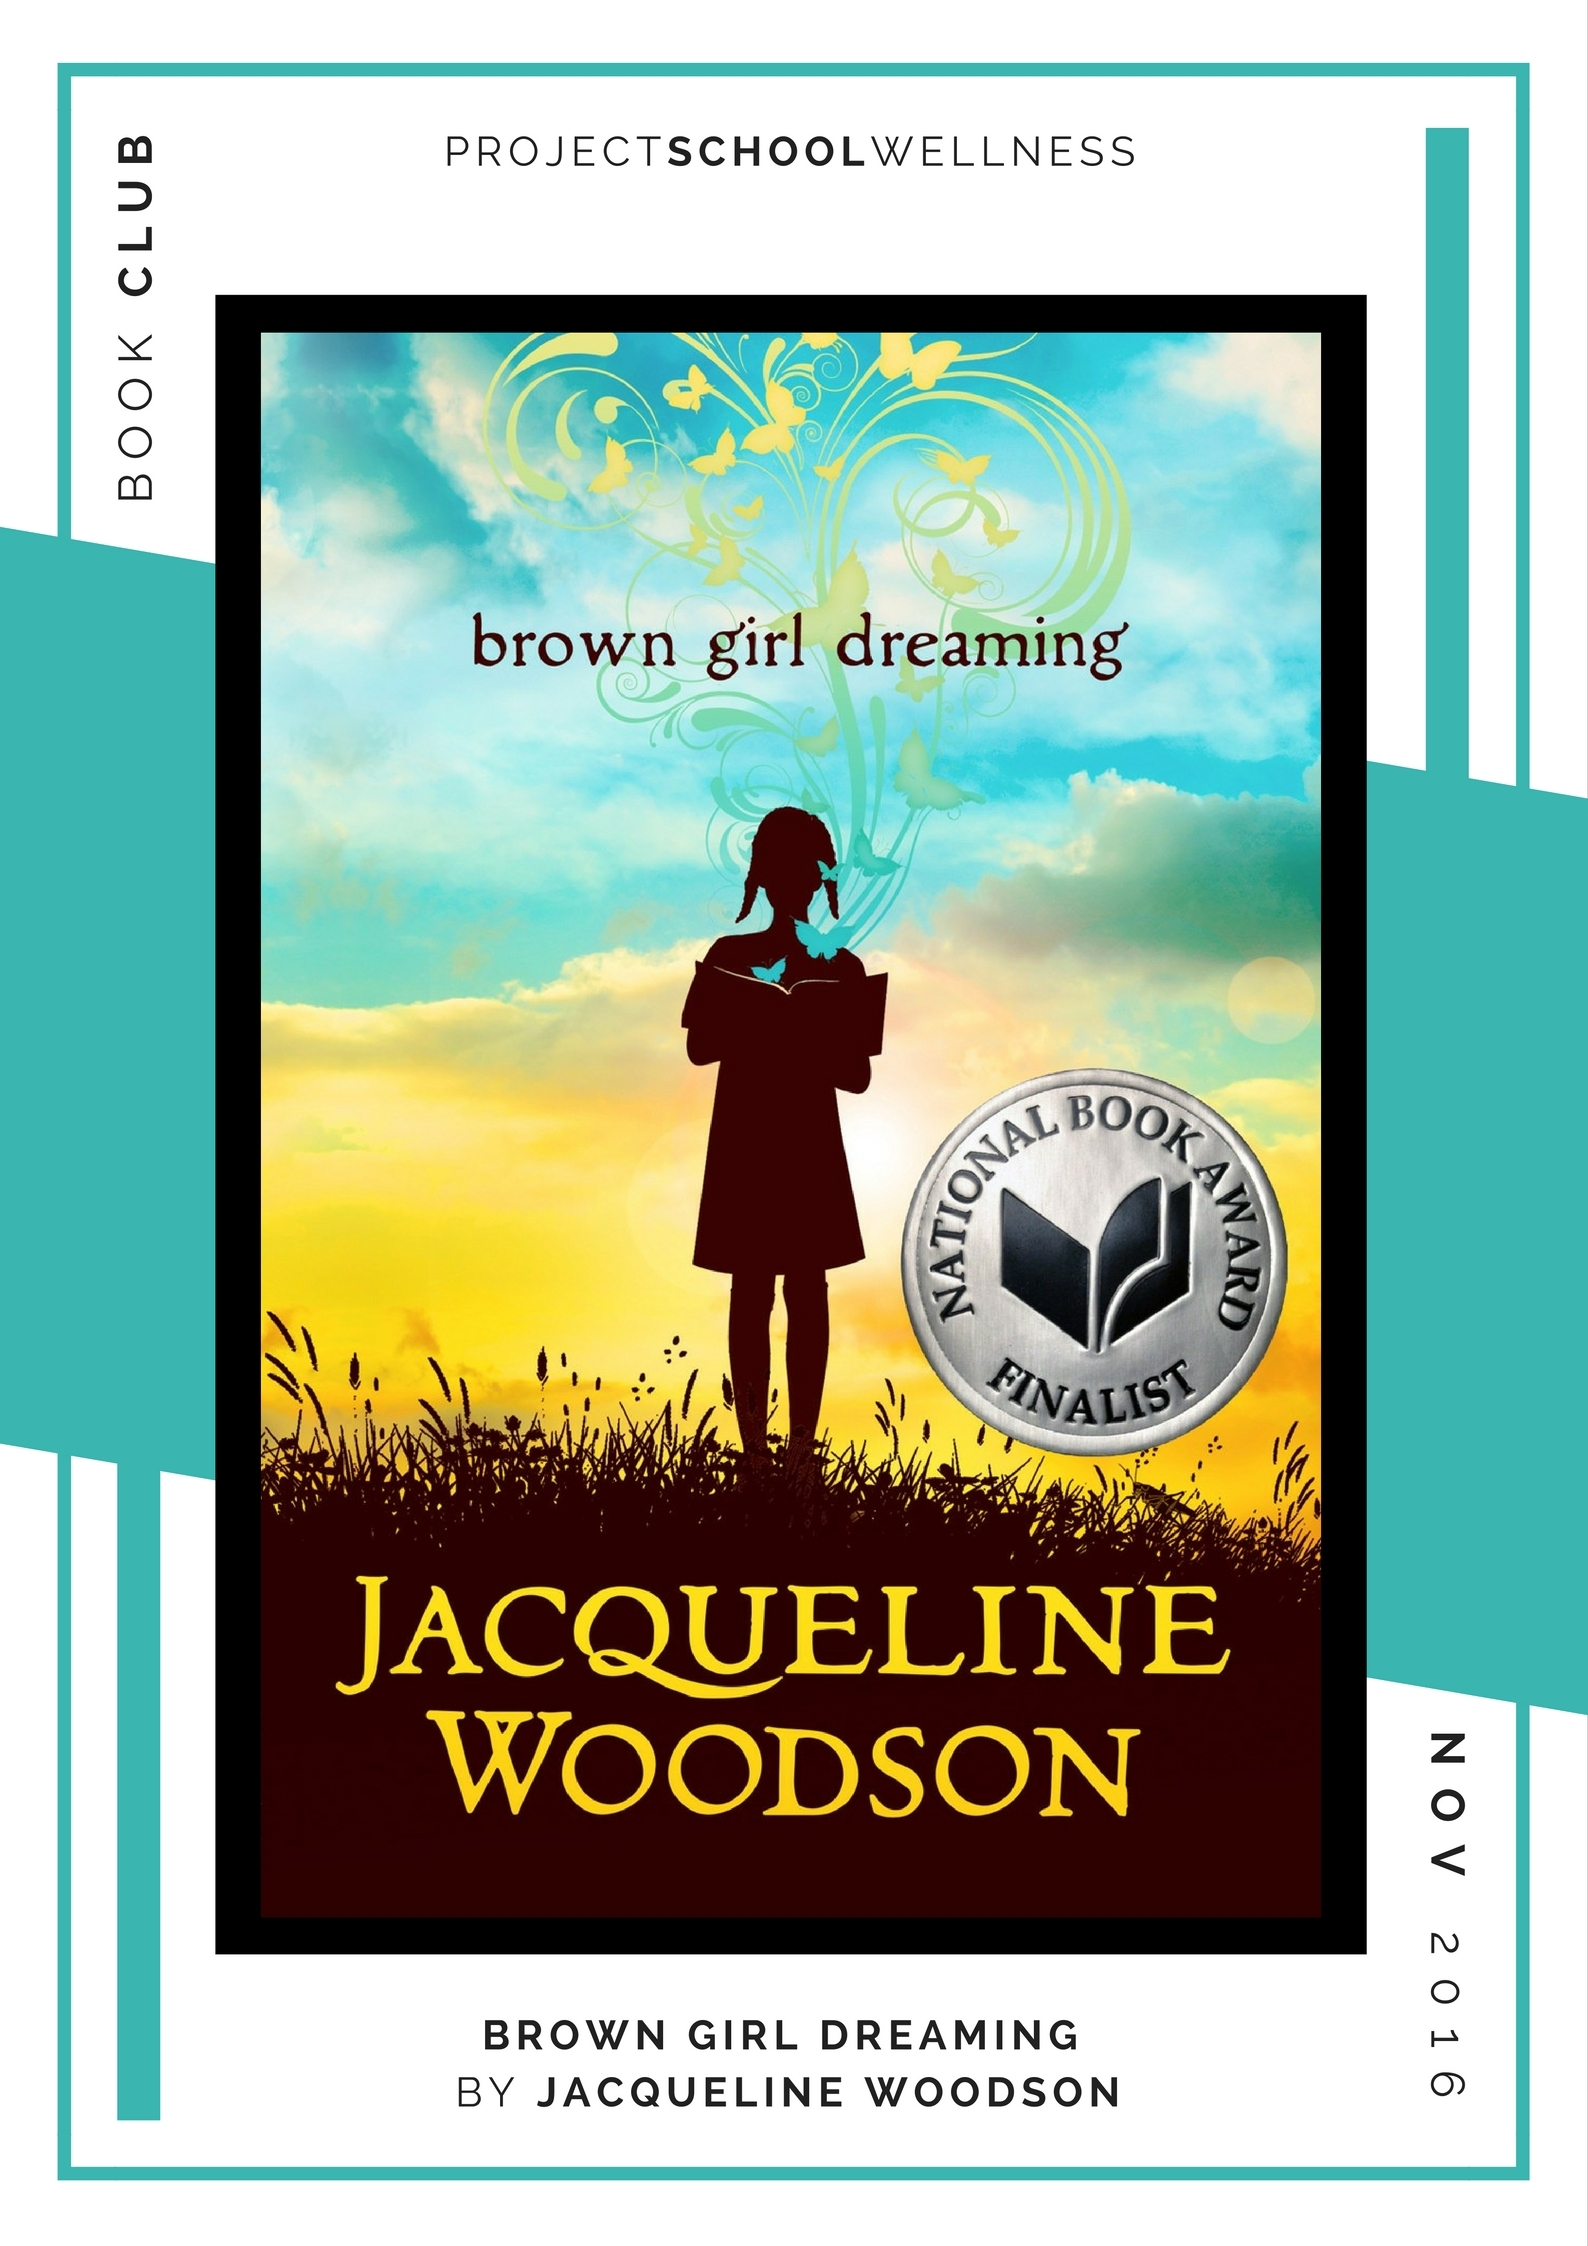 Jacqueline Woodson, Brown Girl Dreaming - Project School Wellness' Teacher Book Club, must read books for every teacher!